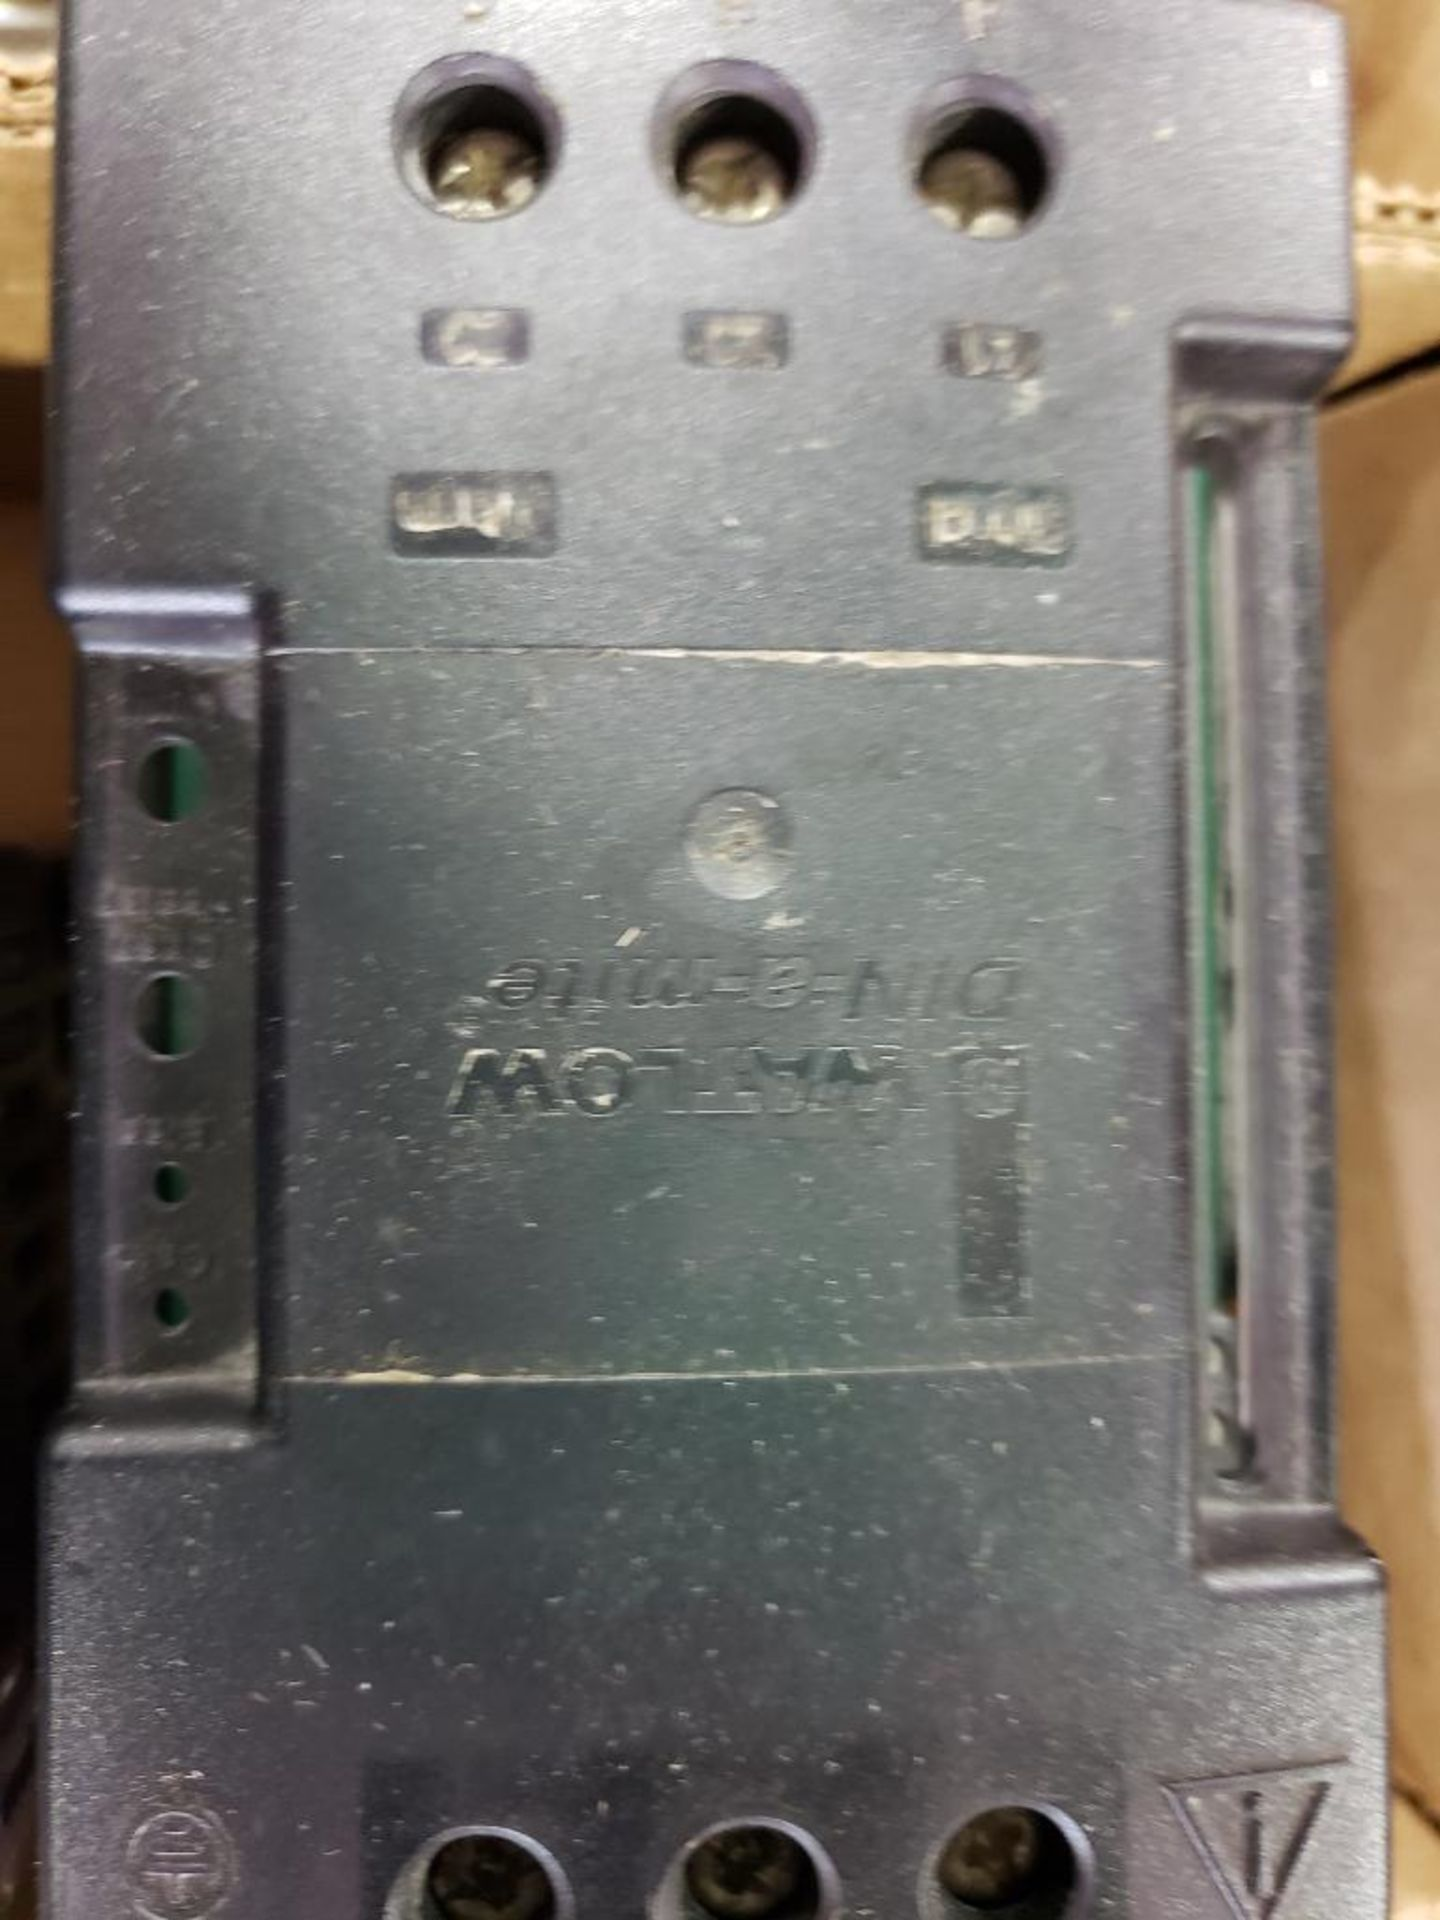 Qty 2 - Watlow DIN-A-Mite DC10-60C0-0000 power controller. - Image 3 of 5